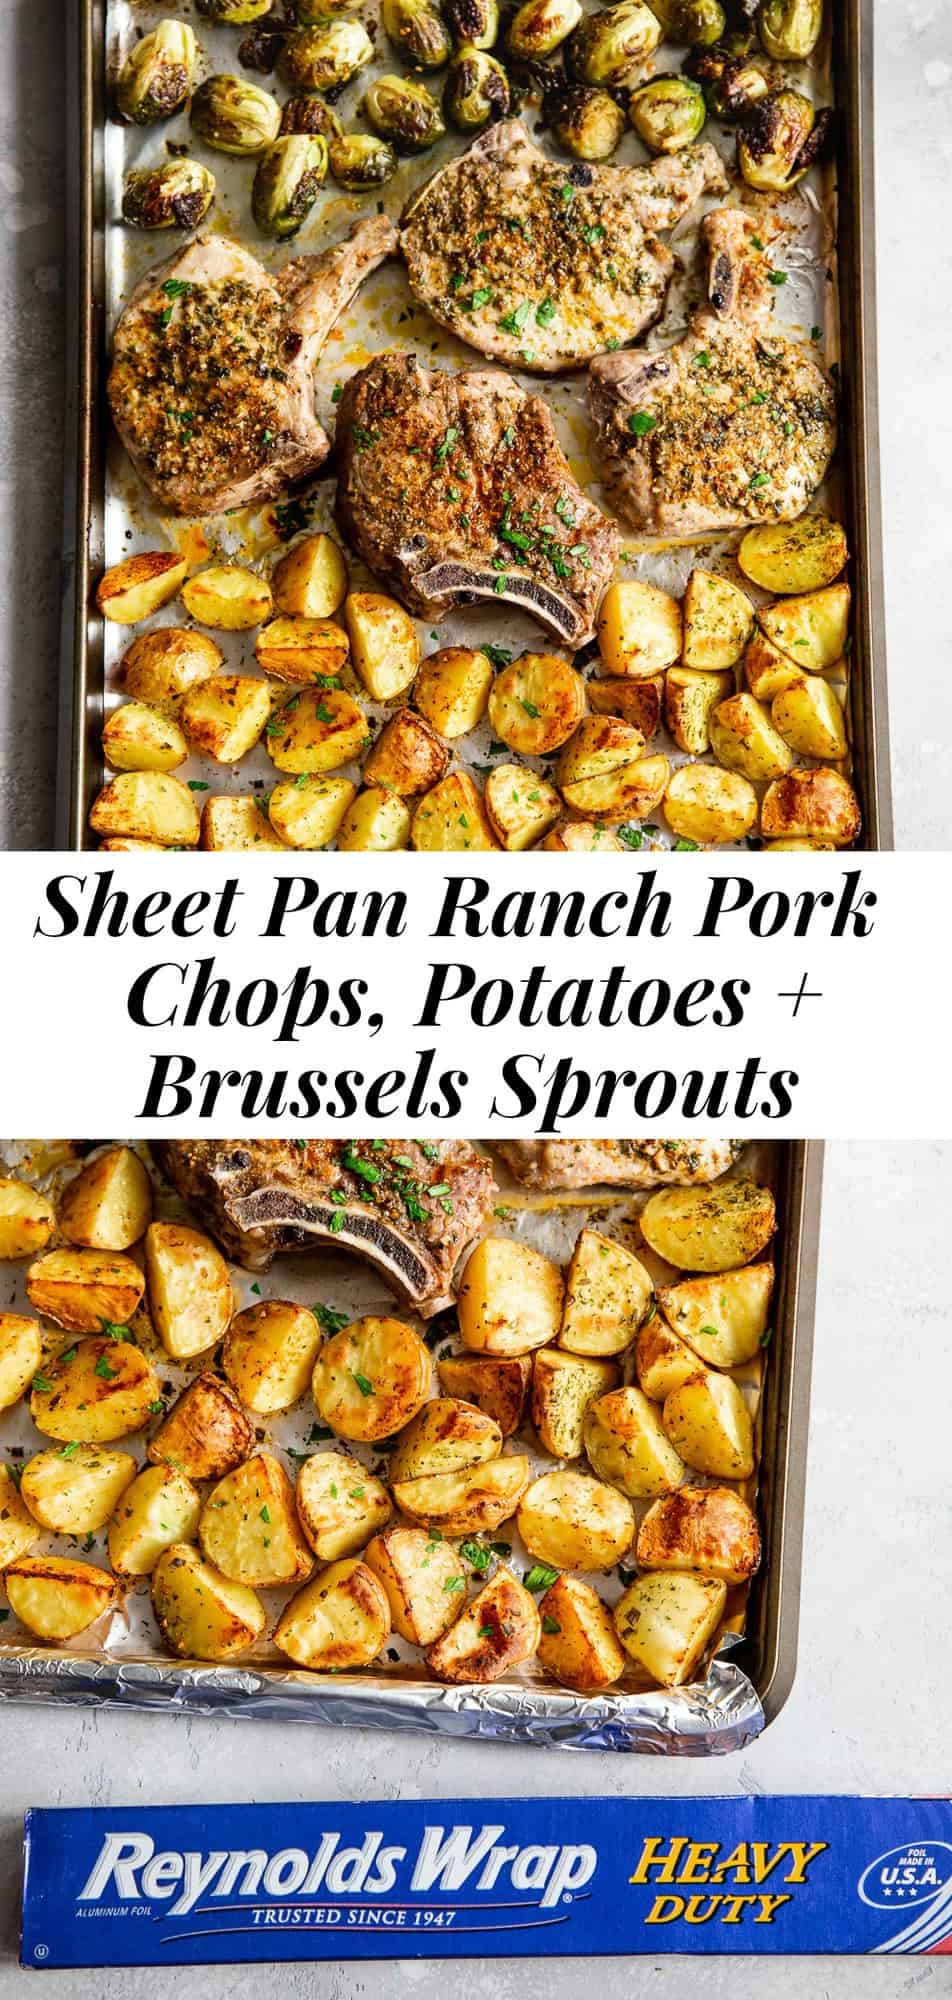 #AD These sheet pan ranch pork chops are juicy and full of flavor, roasted to perfection with crispy seasoned potatoes and Brussels sprouts for an easy, under-30-minute dinner!  Lining my sheet pan with Reynolds Wrap Heavy Duty Foil makes prep and cleanup a total breeze too.  This Paleo friendly dinner is family approved and great for weeknights! #ReynoldsPartner @ReynoldsBrands #paleo #whole30 #cleaneating